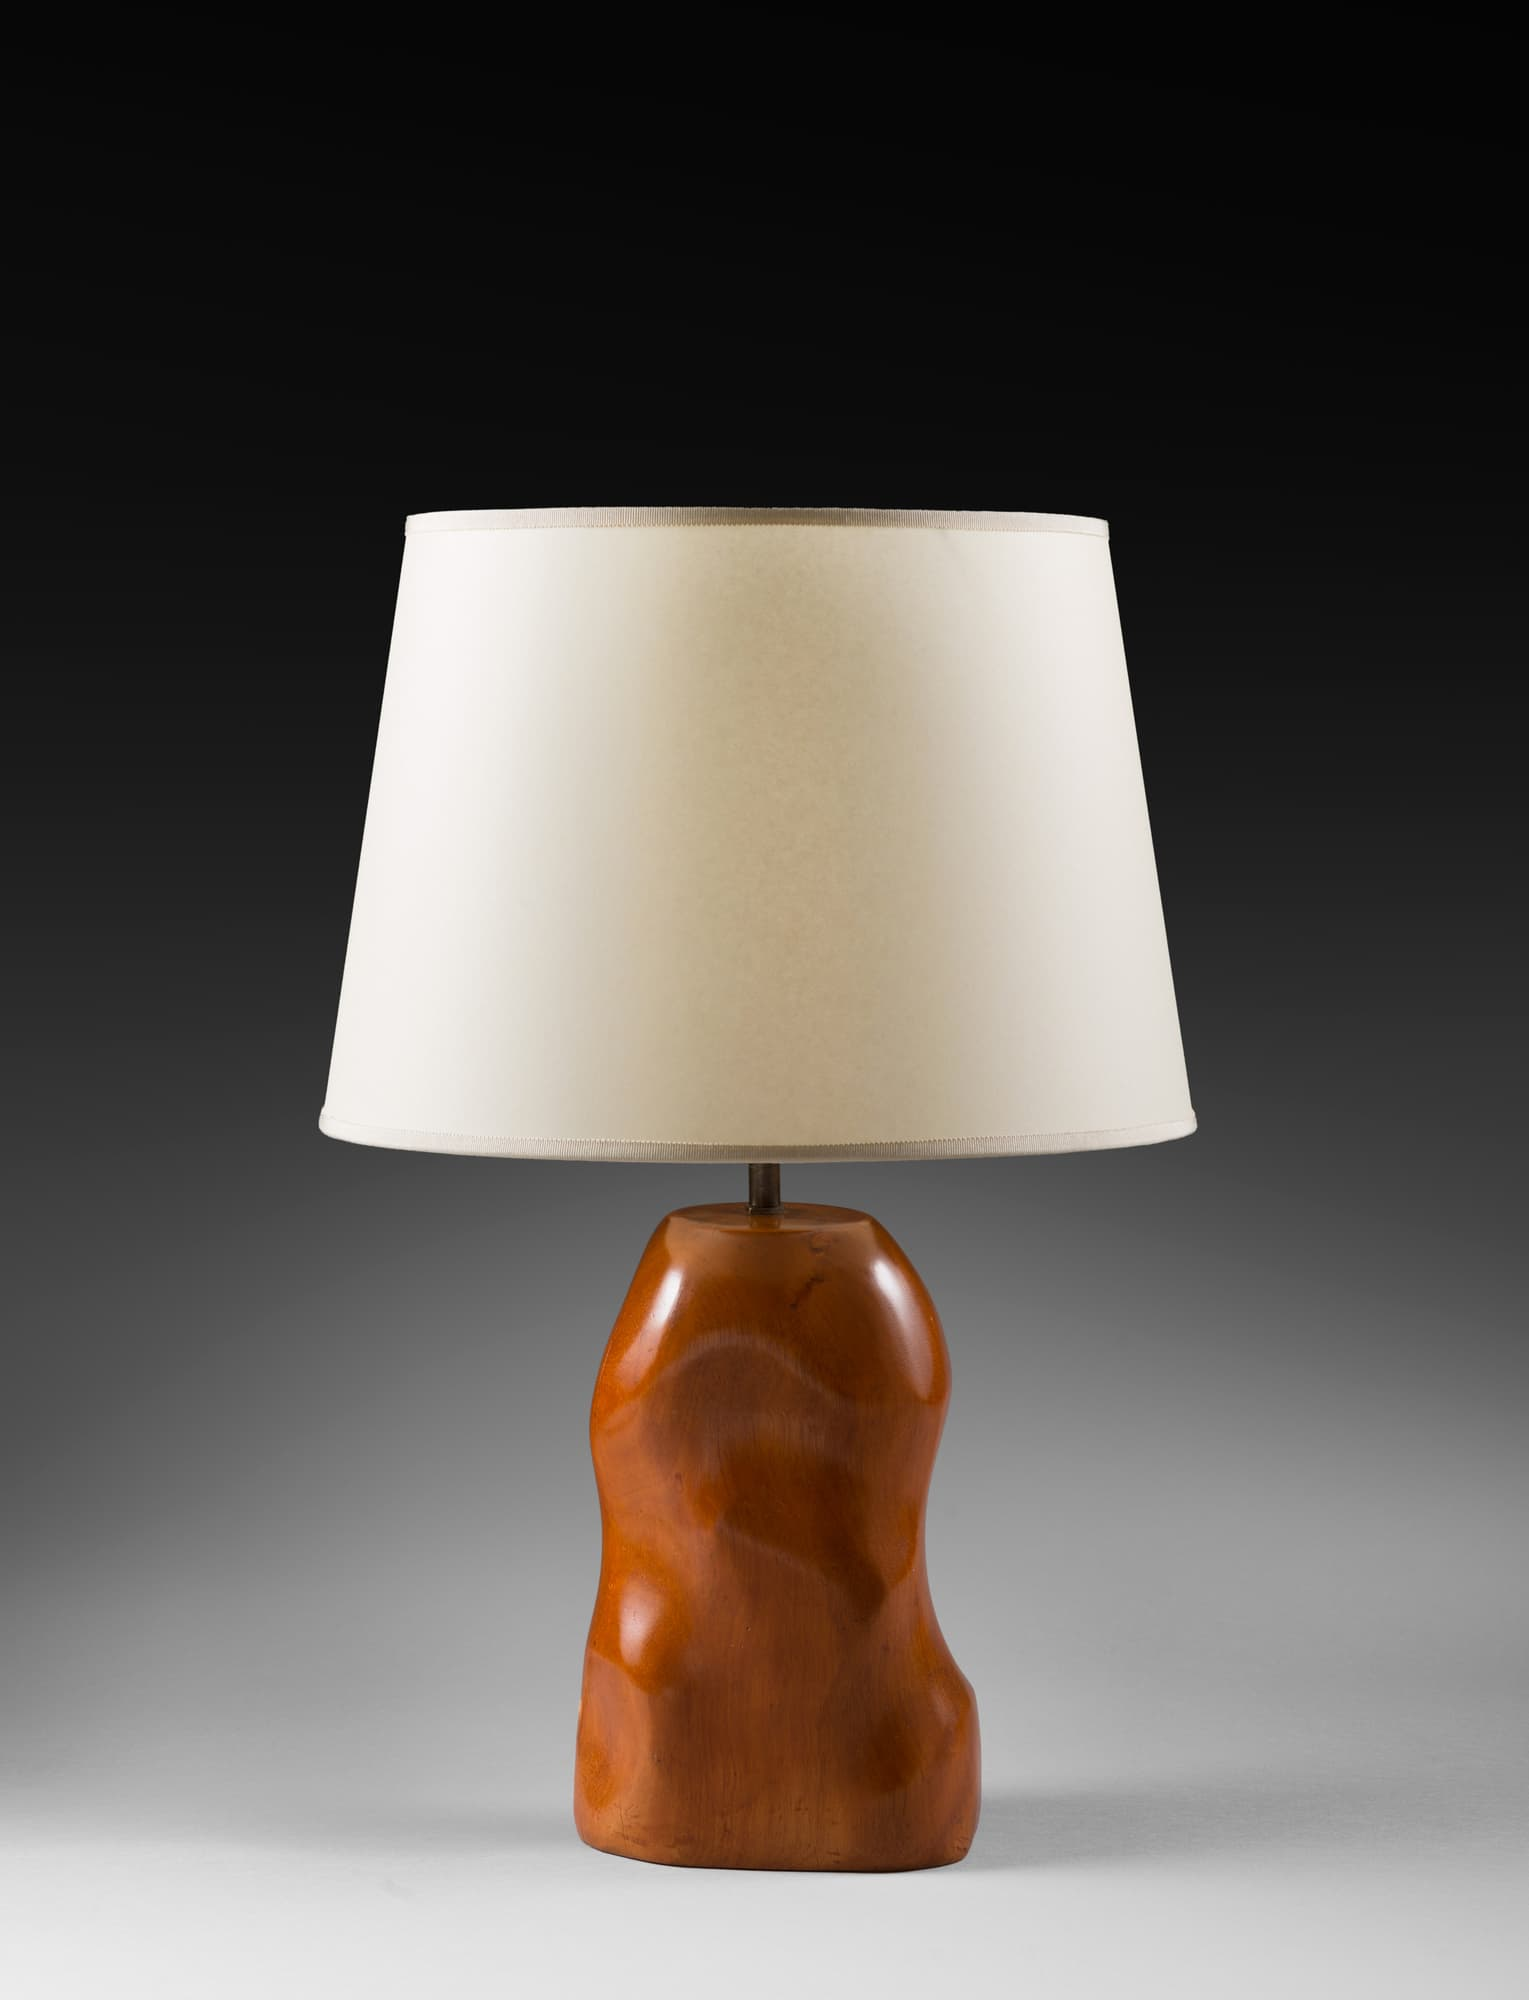 Alexandre Noll, Table lamp, vue 01